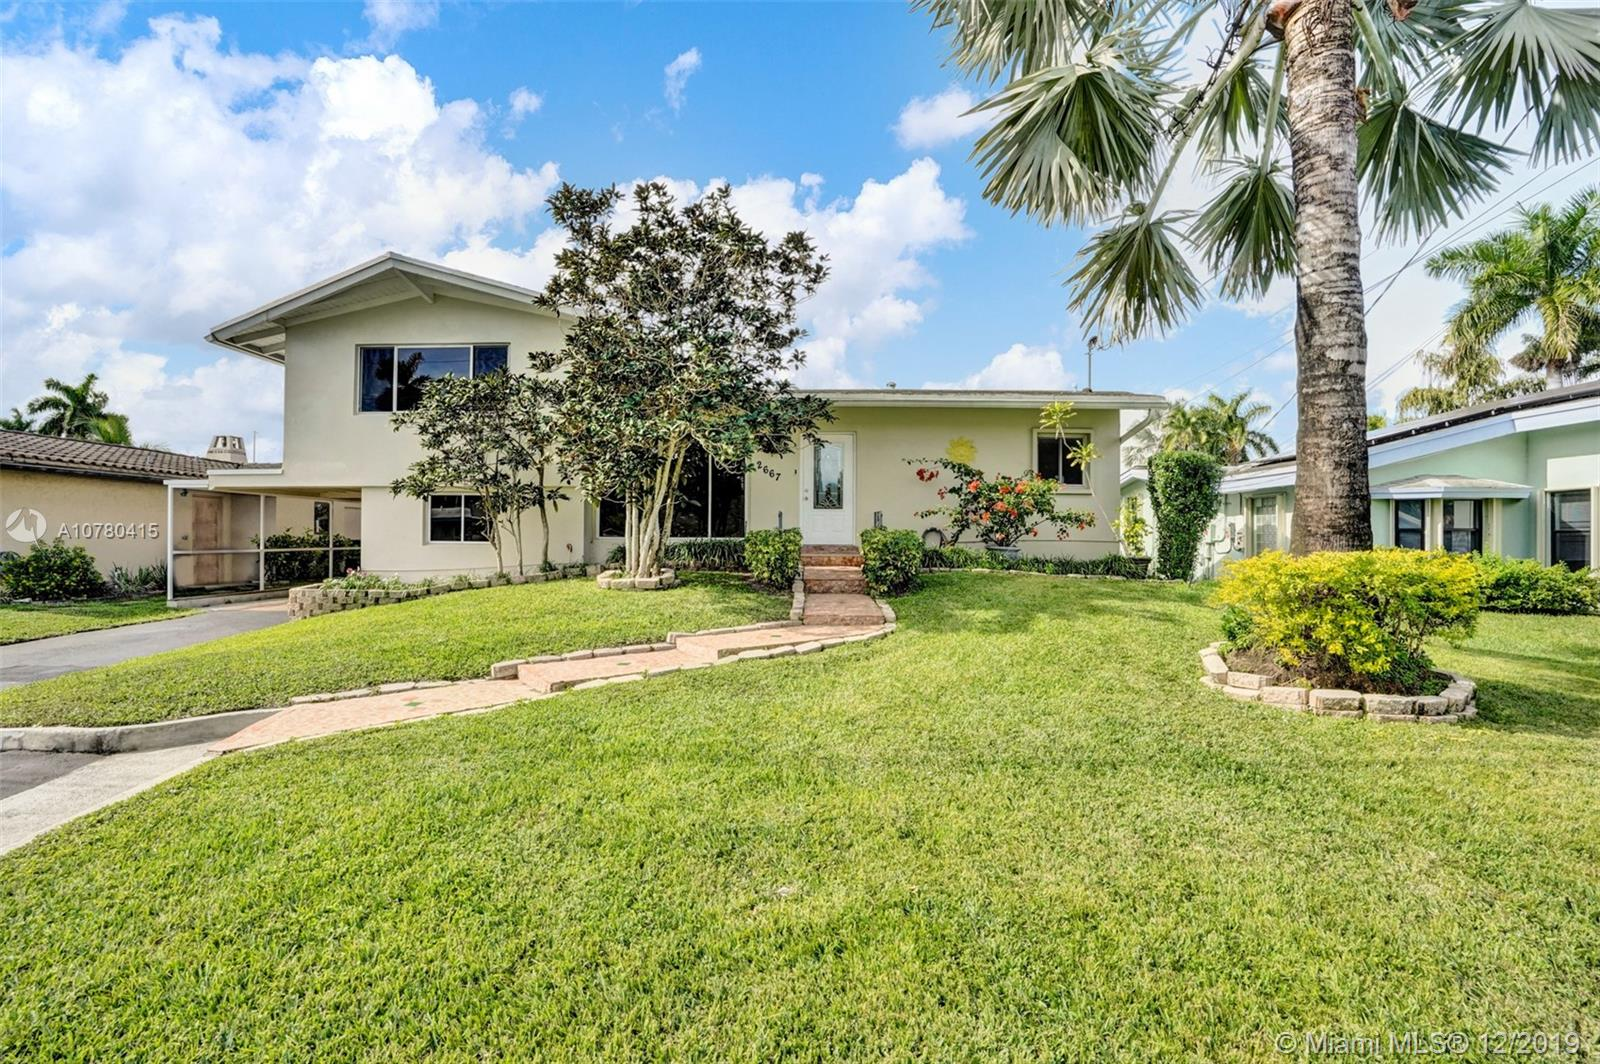 Wonderful highly sought after Tri-level home sits 5 lots off point with 65ft of deep water with ocean access & no fixed bridges. This 3/2 features lots of natural light with vaulted ceilings, recently updated kitchen w/Corian counters and SS appliances. The eat-in kitchen opens out to the back yard to make for easy entertaining. Updates in the last year totaling $60k include a completely new 45ft dock with new dock pedestal providing 50/30 amp power and water, updates to seawall including weep holes, new 400 amp electrical panel, all cast iron sewer lines and water supply line replaced, and new HVAC unit. These upgrades are HUGE in the long run.  Lauderdale Isles is centrally located with easy access to all major highways and minutes to downtown, tri-rail, airport, and beaches. MOTIVATED!